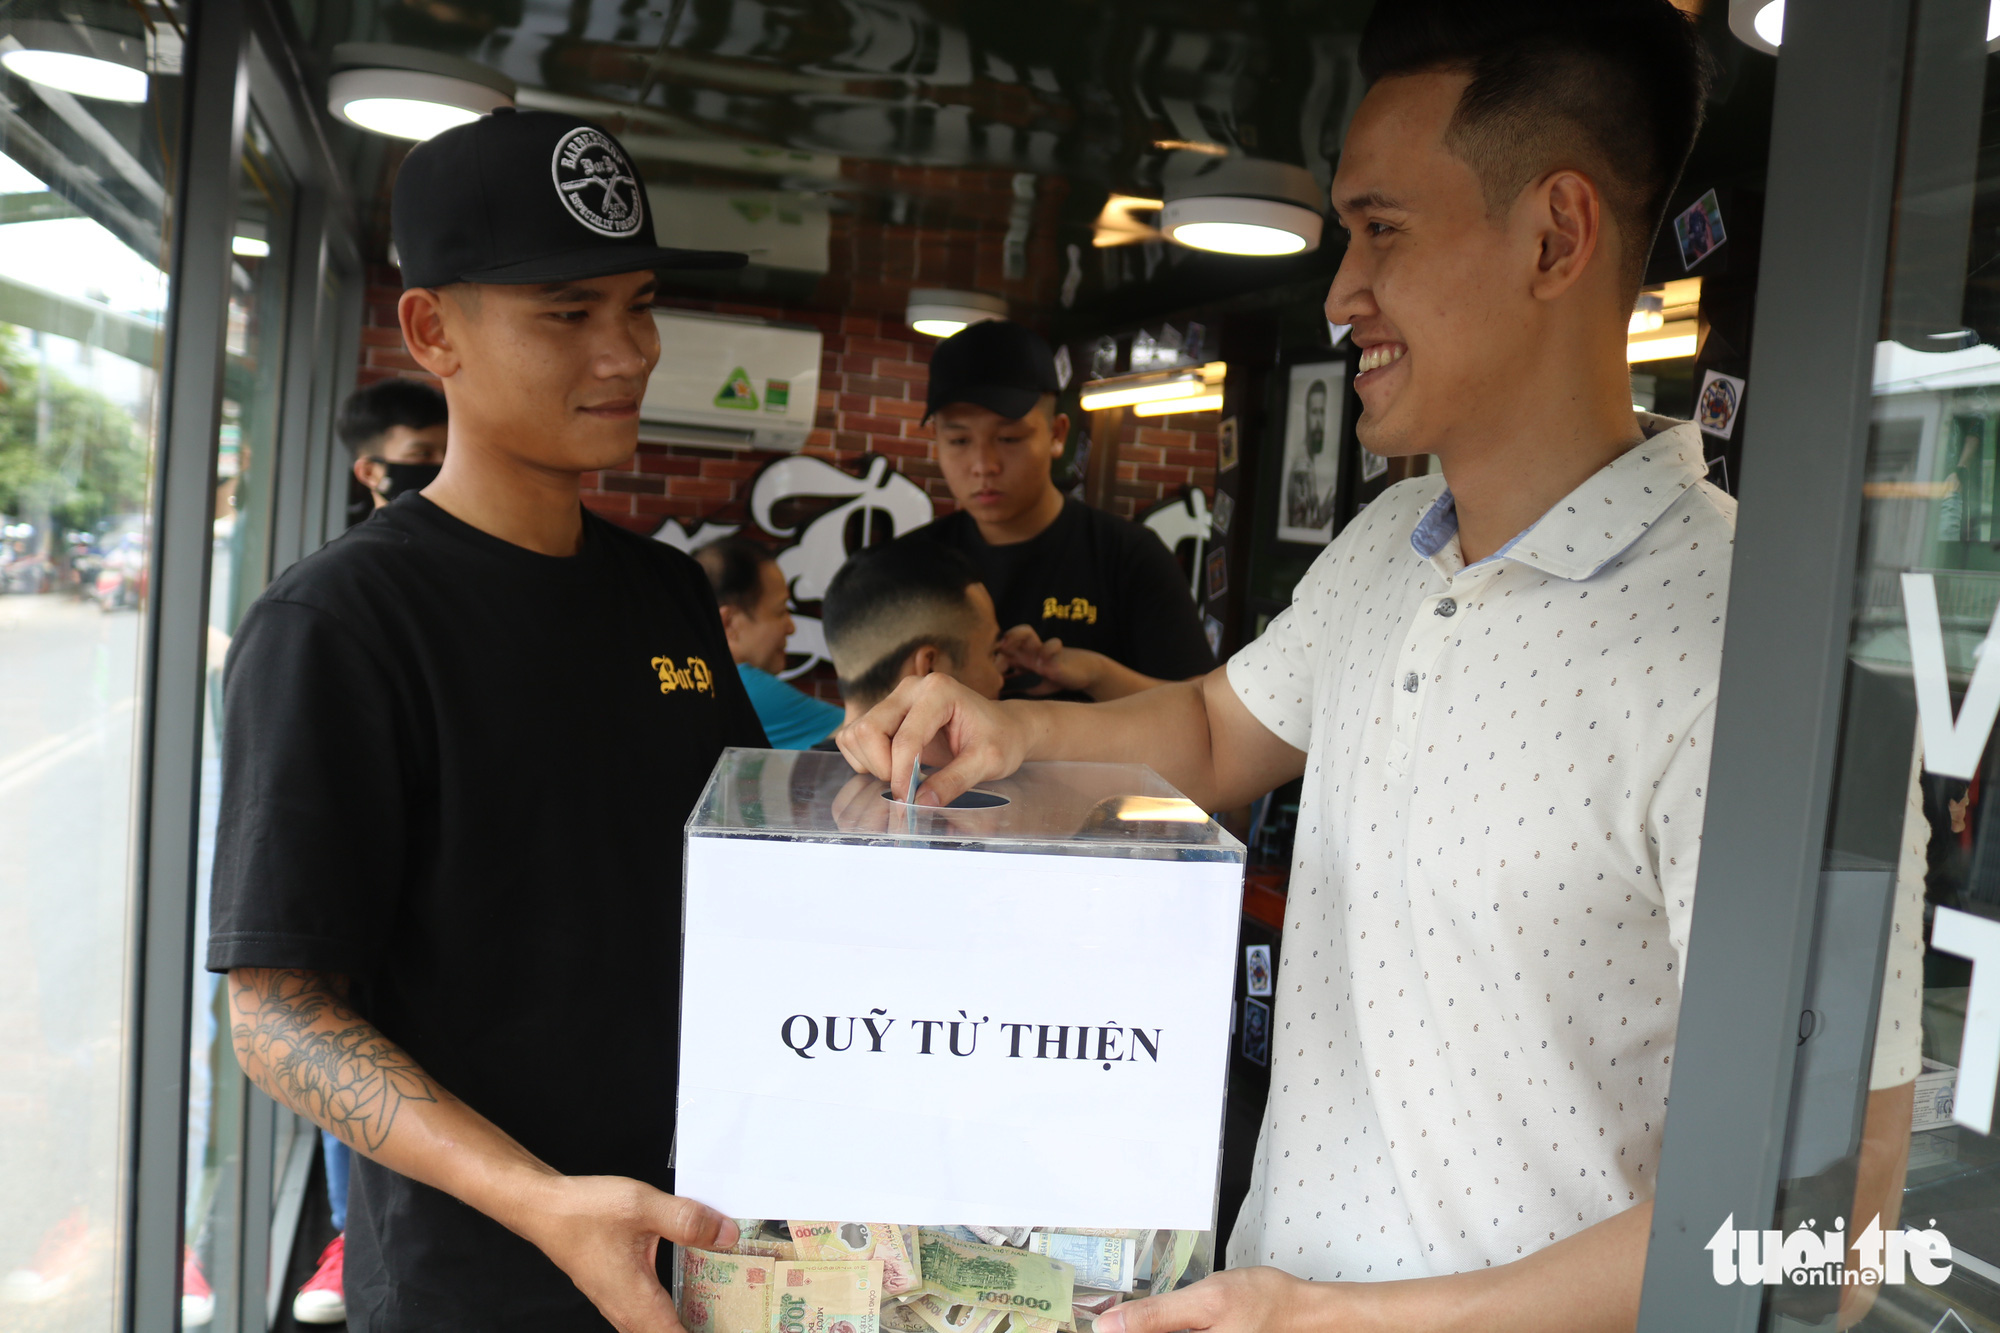 Nguyen Minh Phuc (right), a 24-year-old resident in District 12, Ho Chi Minh City, makes a donation after getting a free haircut at a Vietnamese mobile barbershop backed by charitable purposes. Photo: Ngoc Phuong / Tuoi Tre